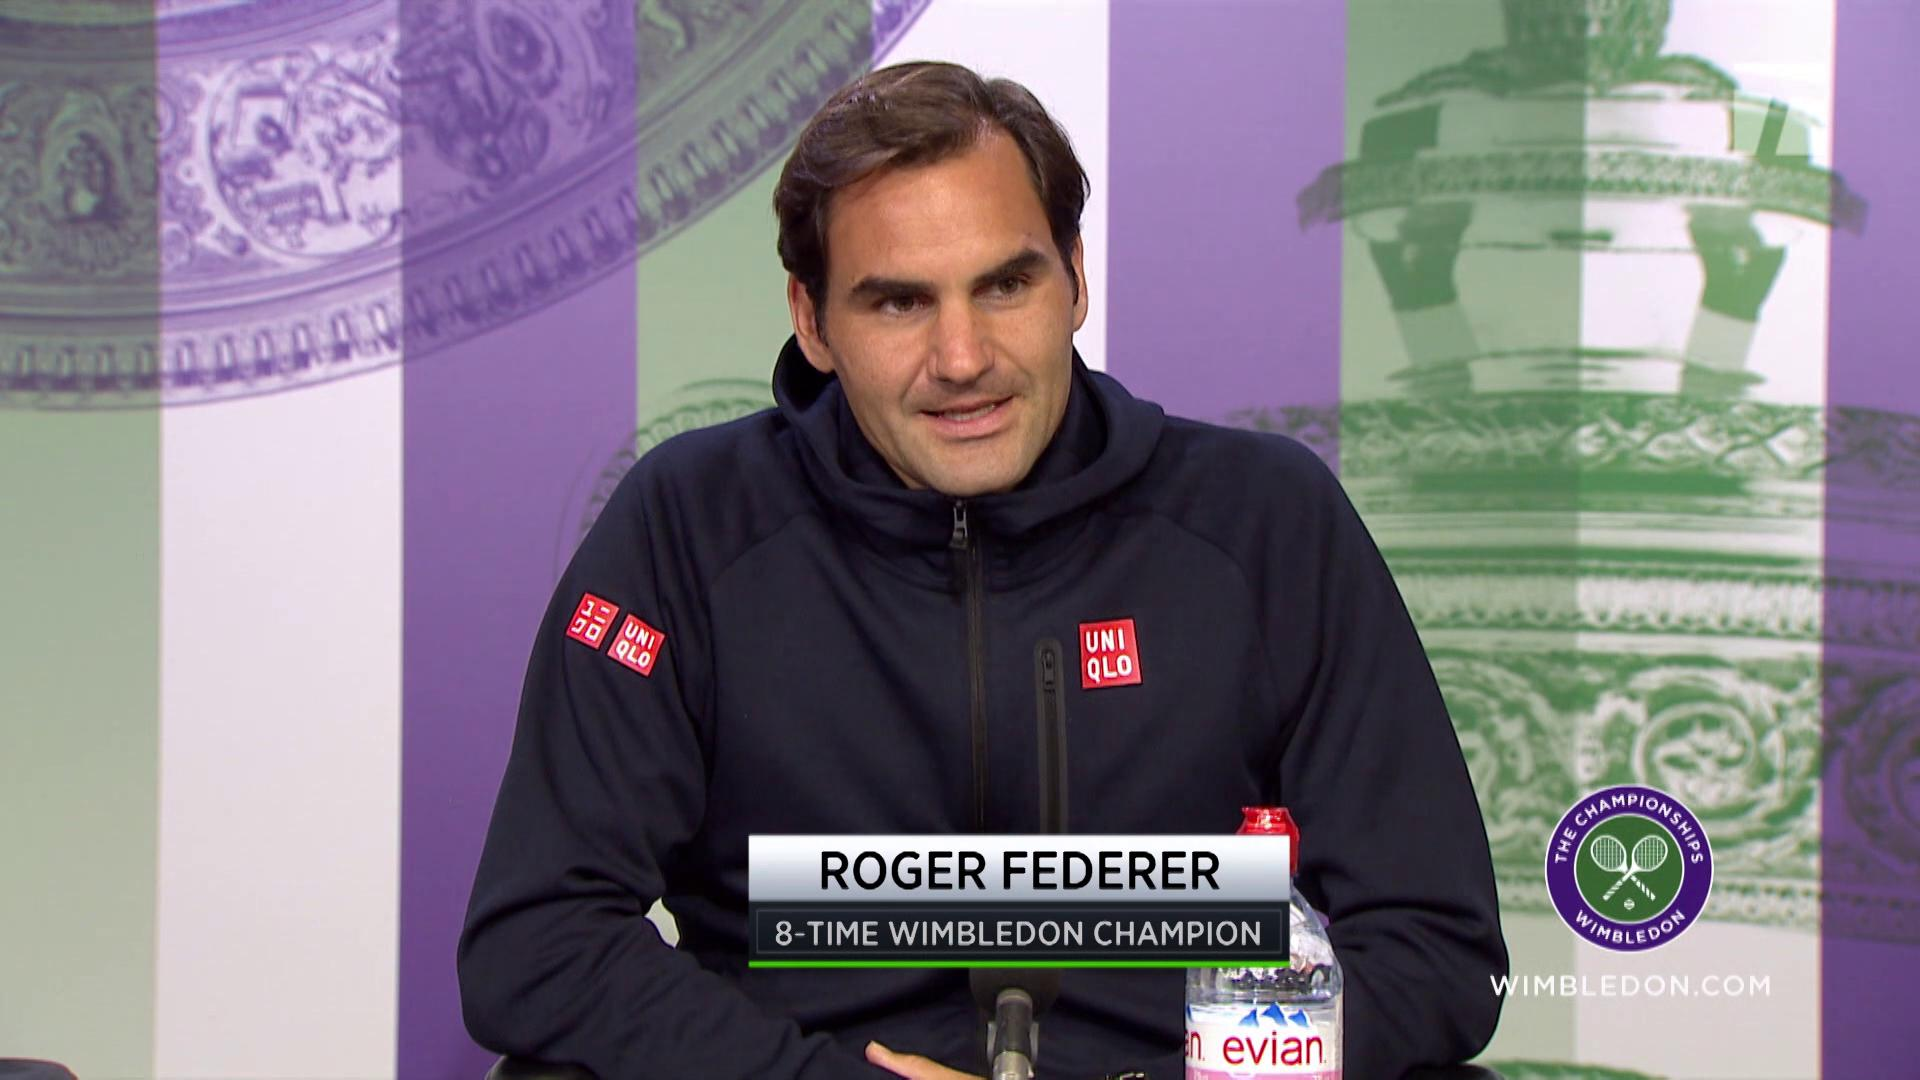 f3c6398f21a02a The Future of Federer  Why Roger made the switch from Nike to Uniqlo ...